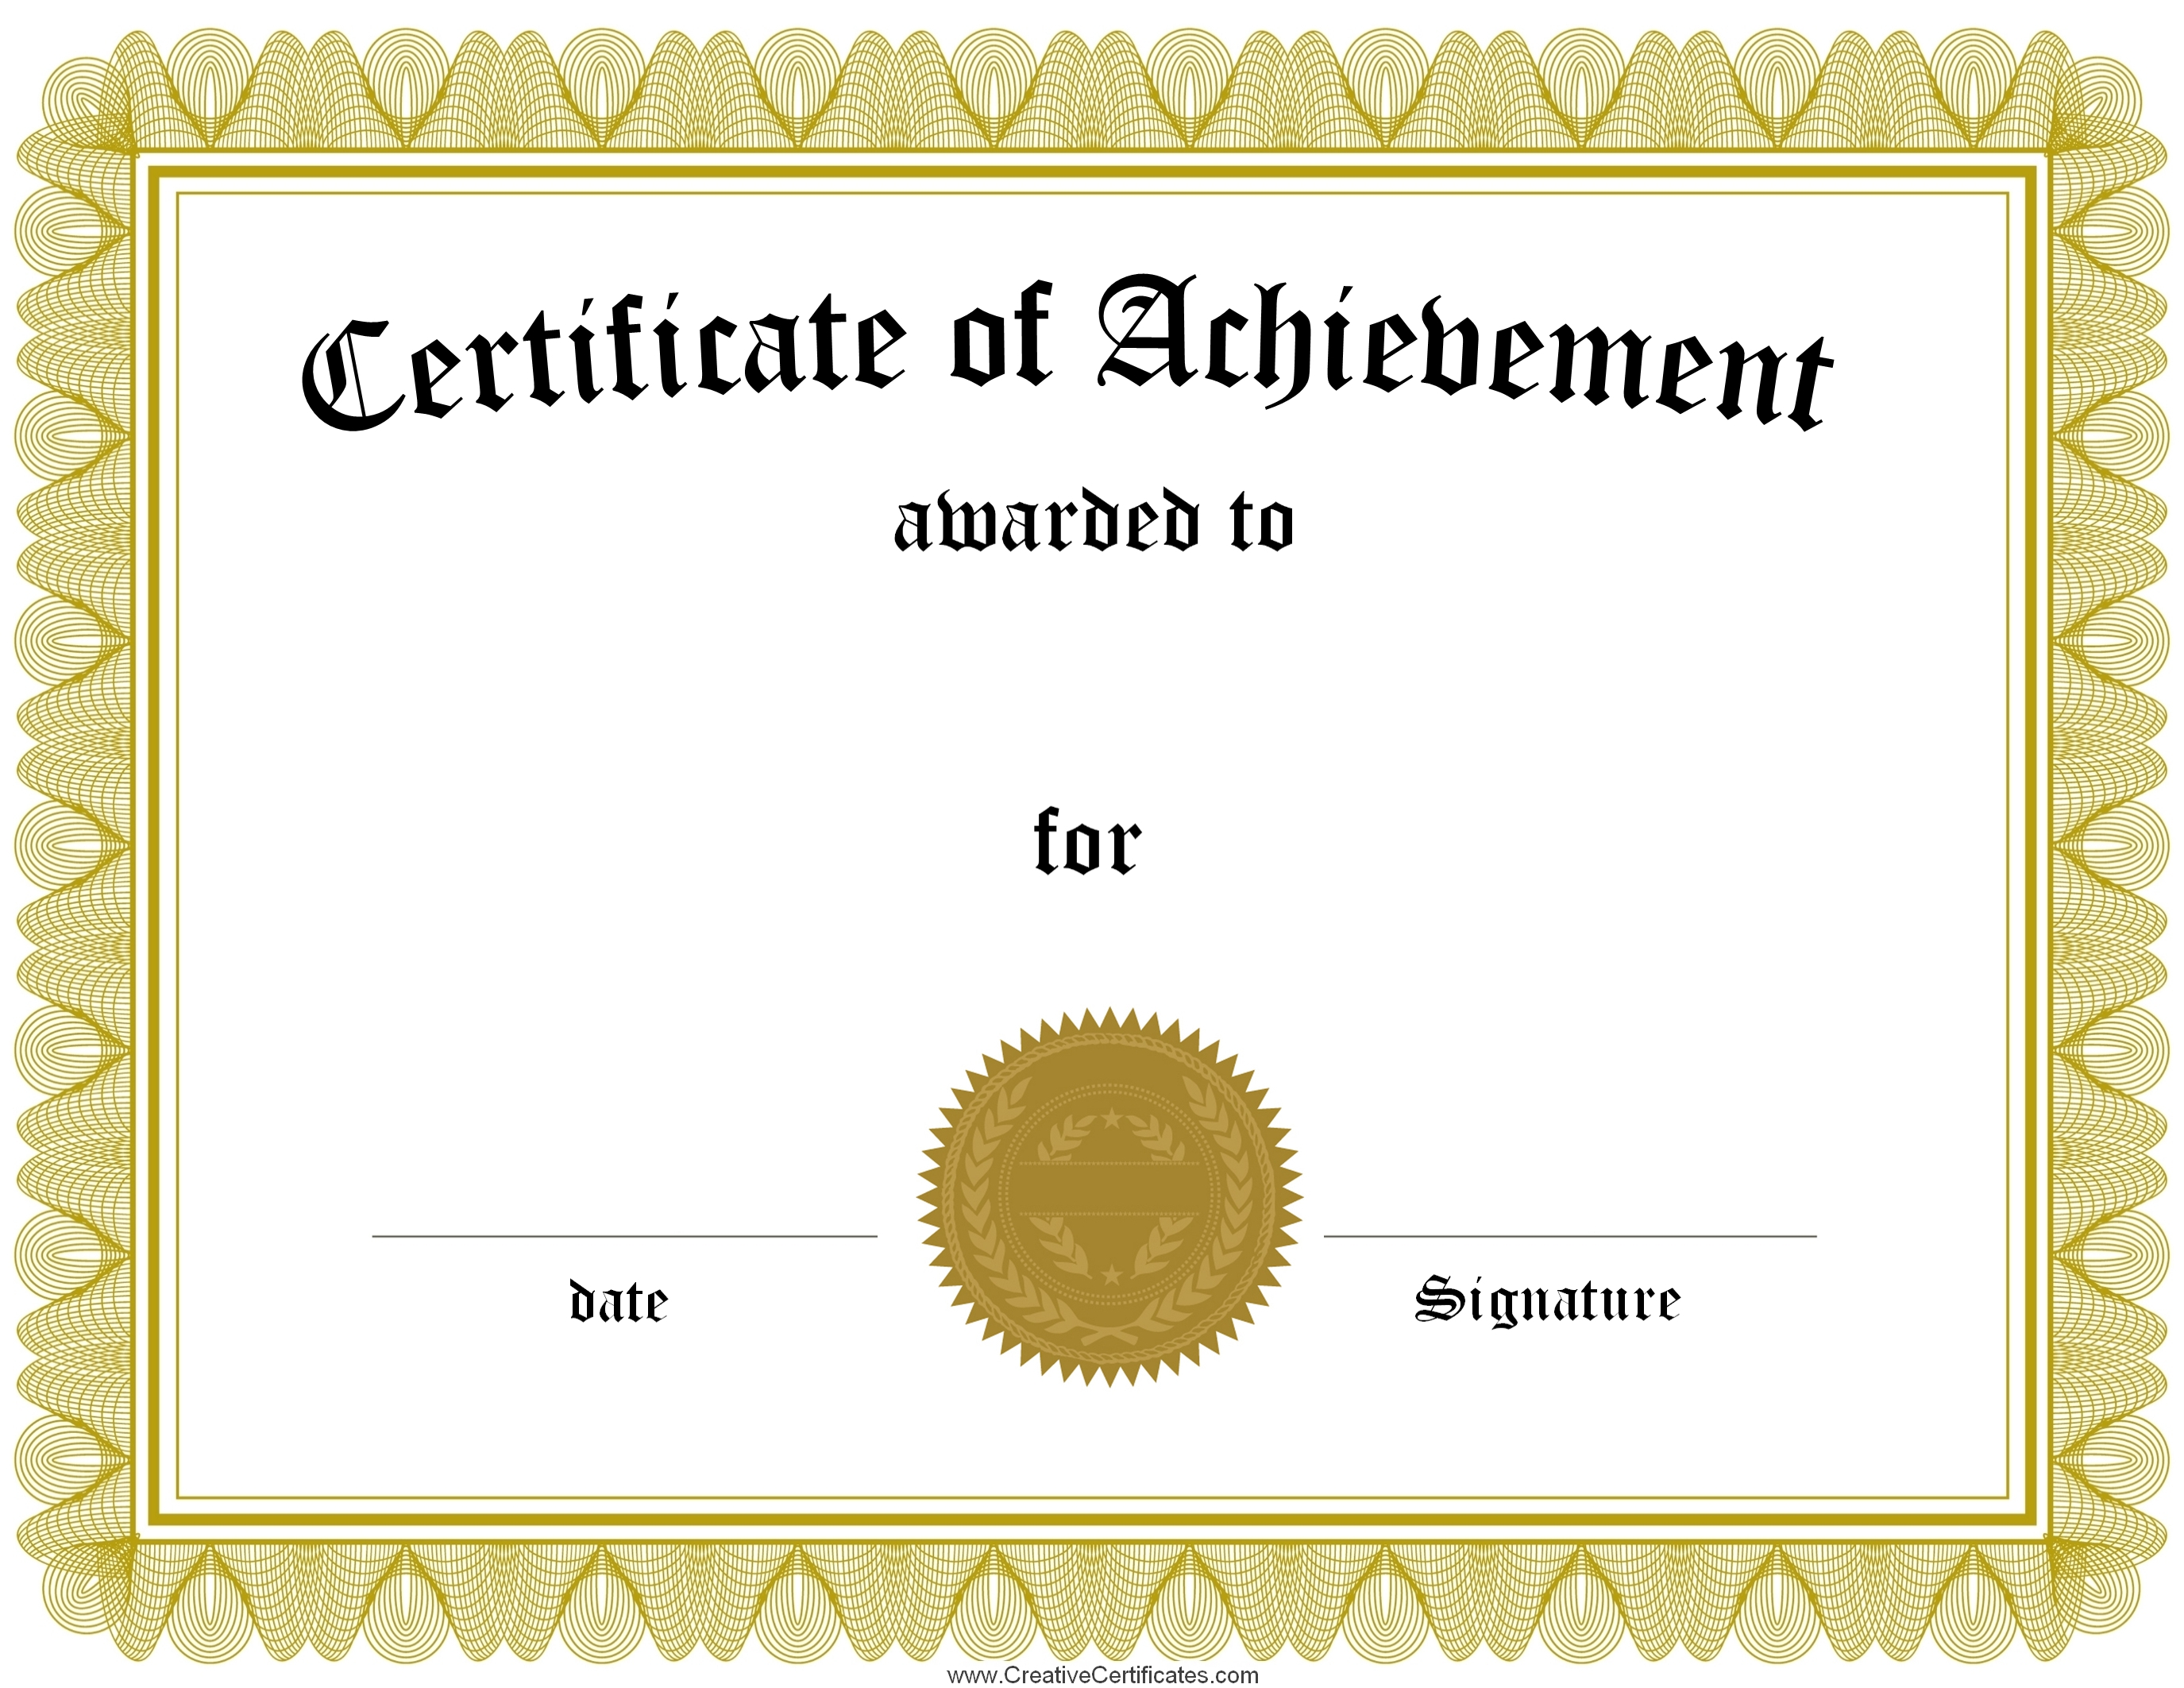 certificate of achievement printable word doc